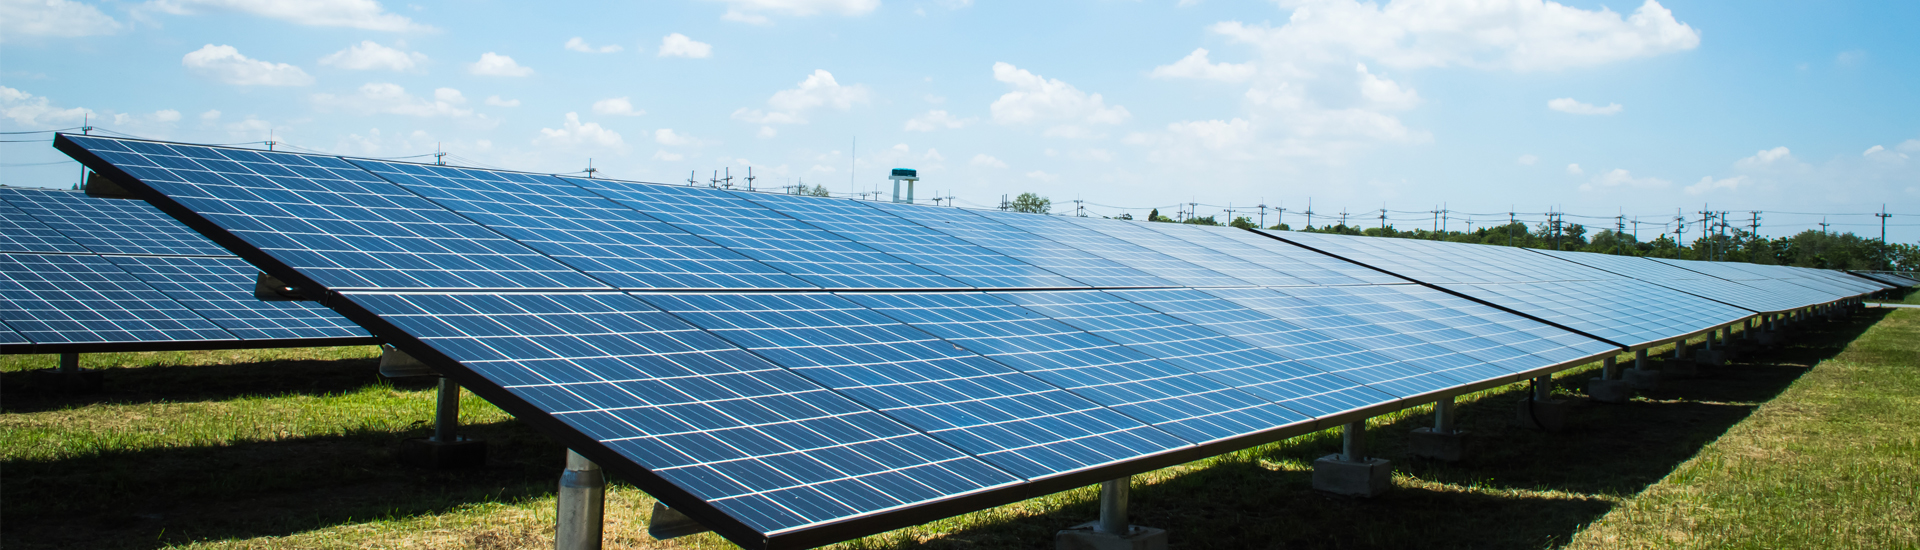 Planning and implementation of renewable energy and energy efficiency investments